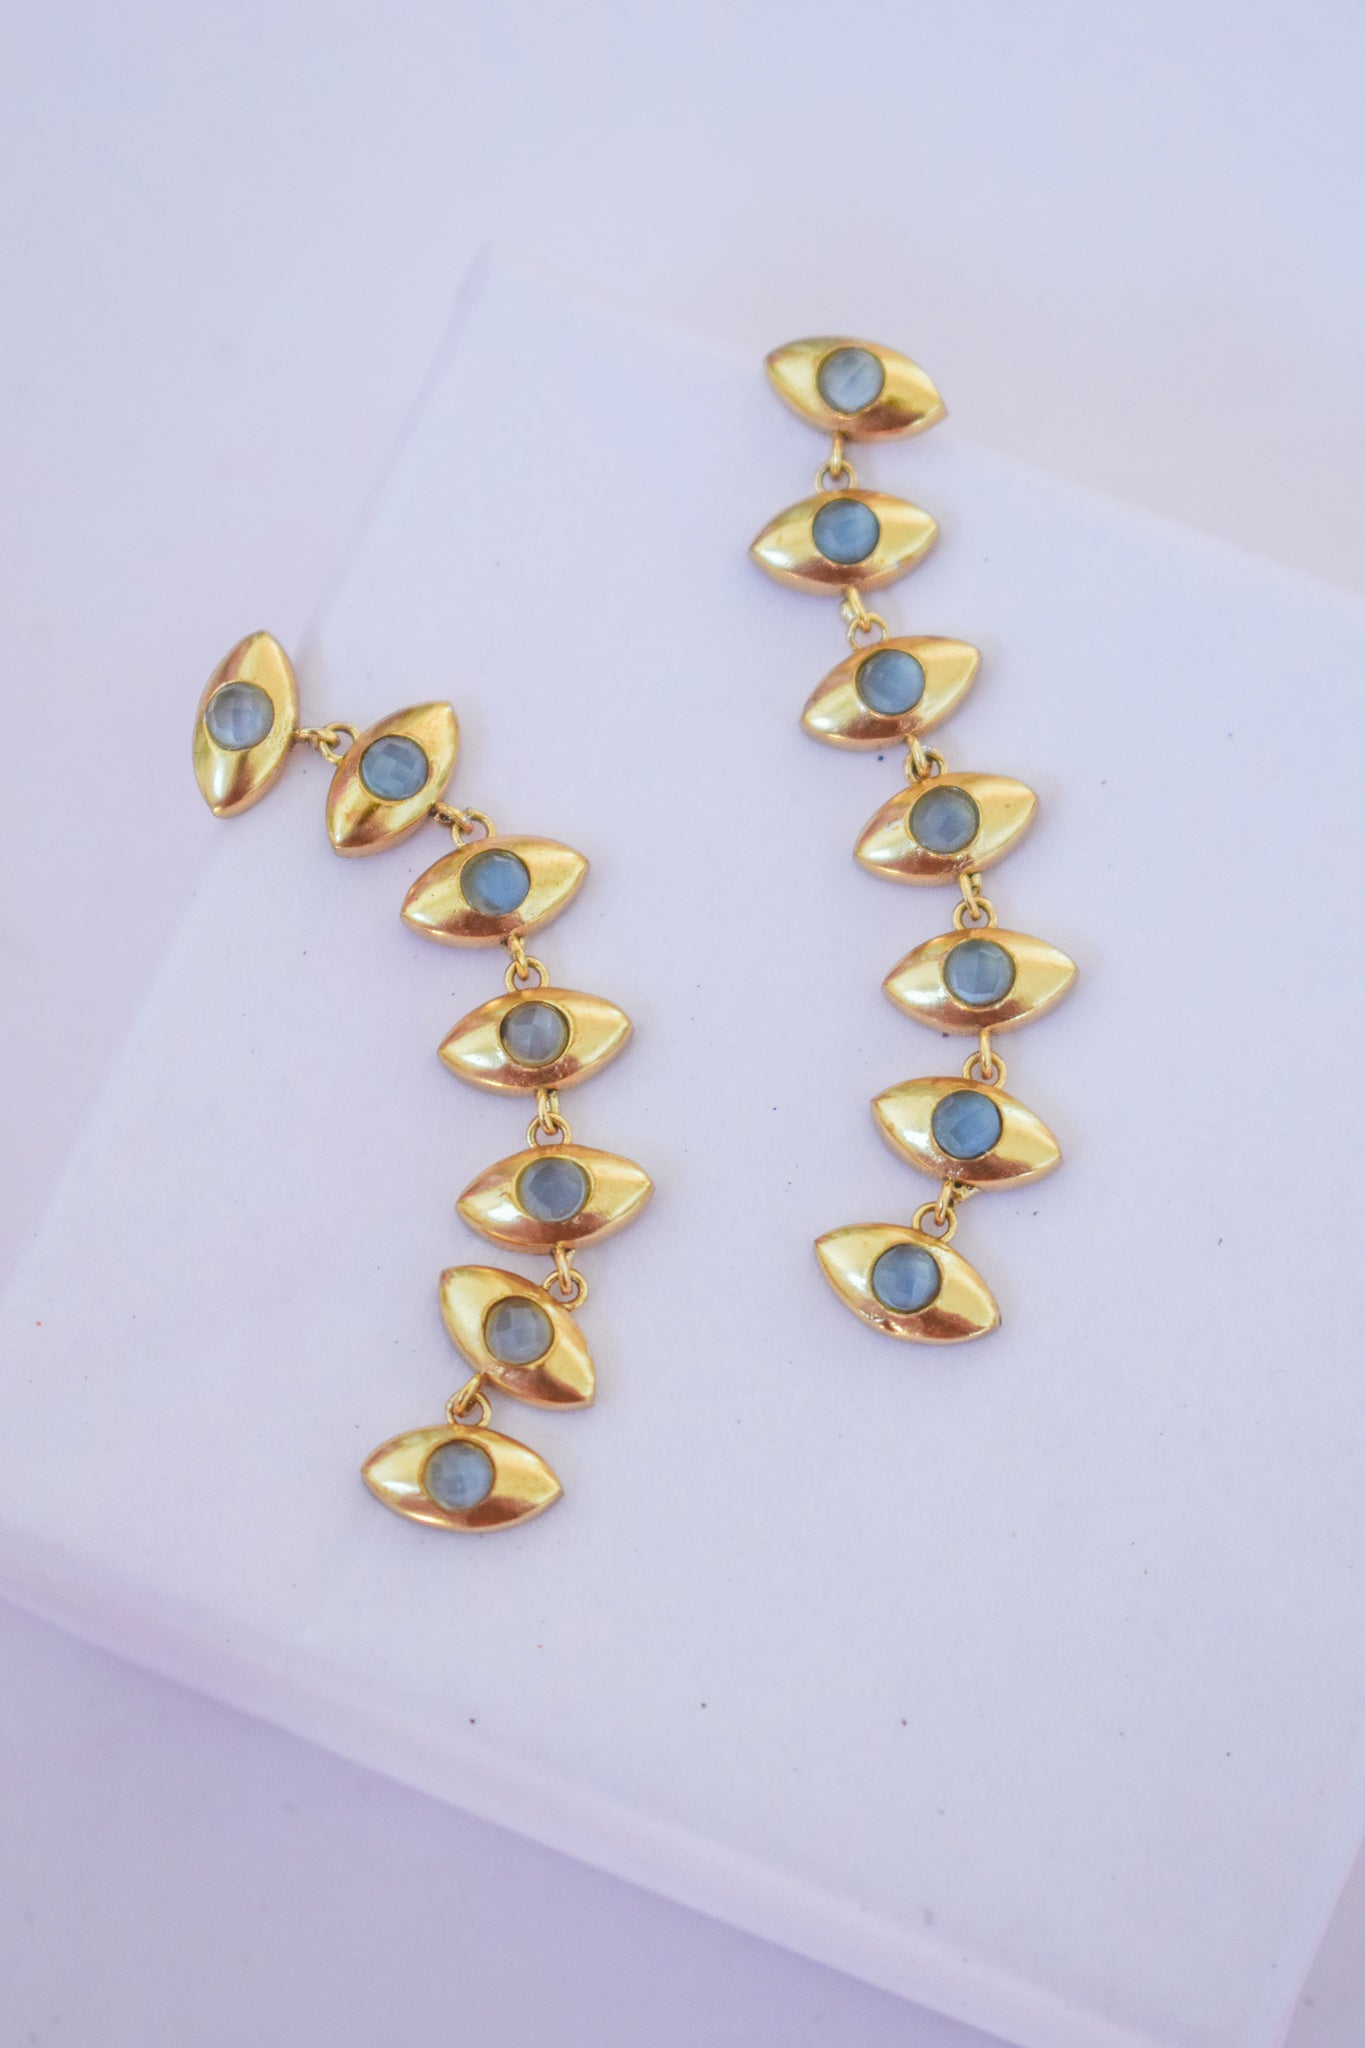 7 Eye Dangle Earrings